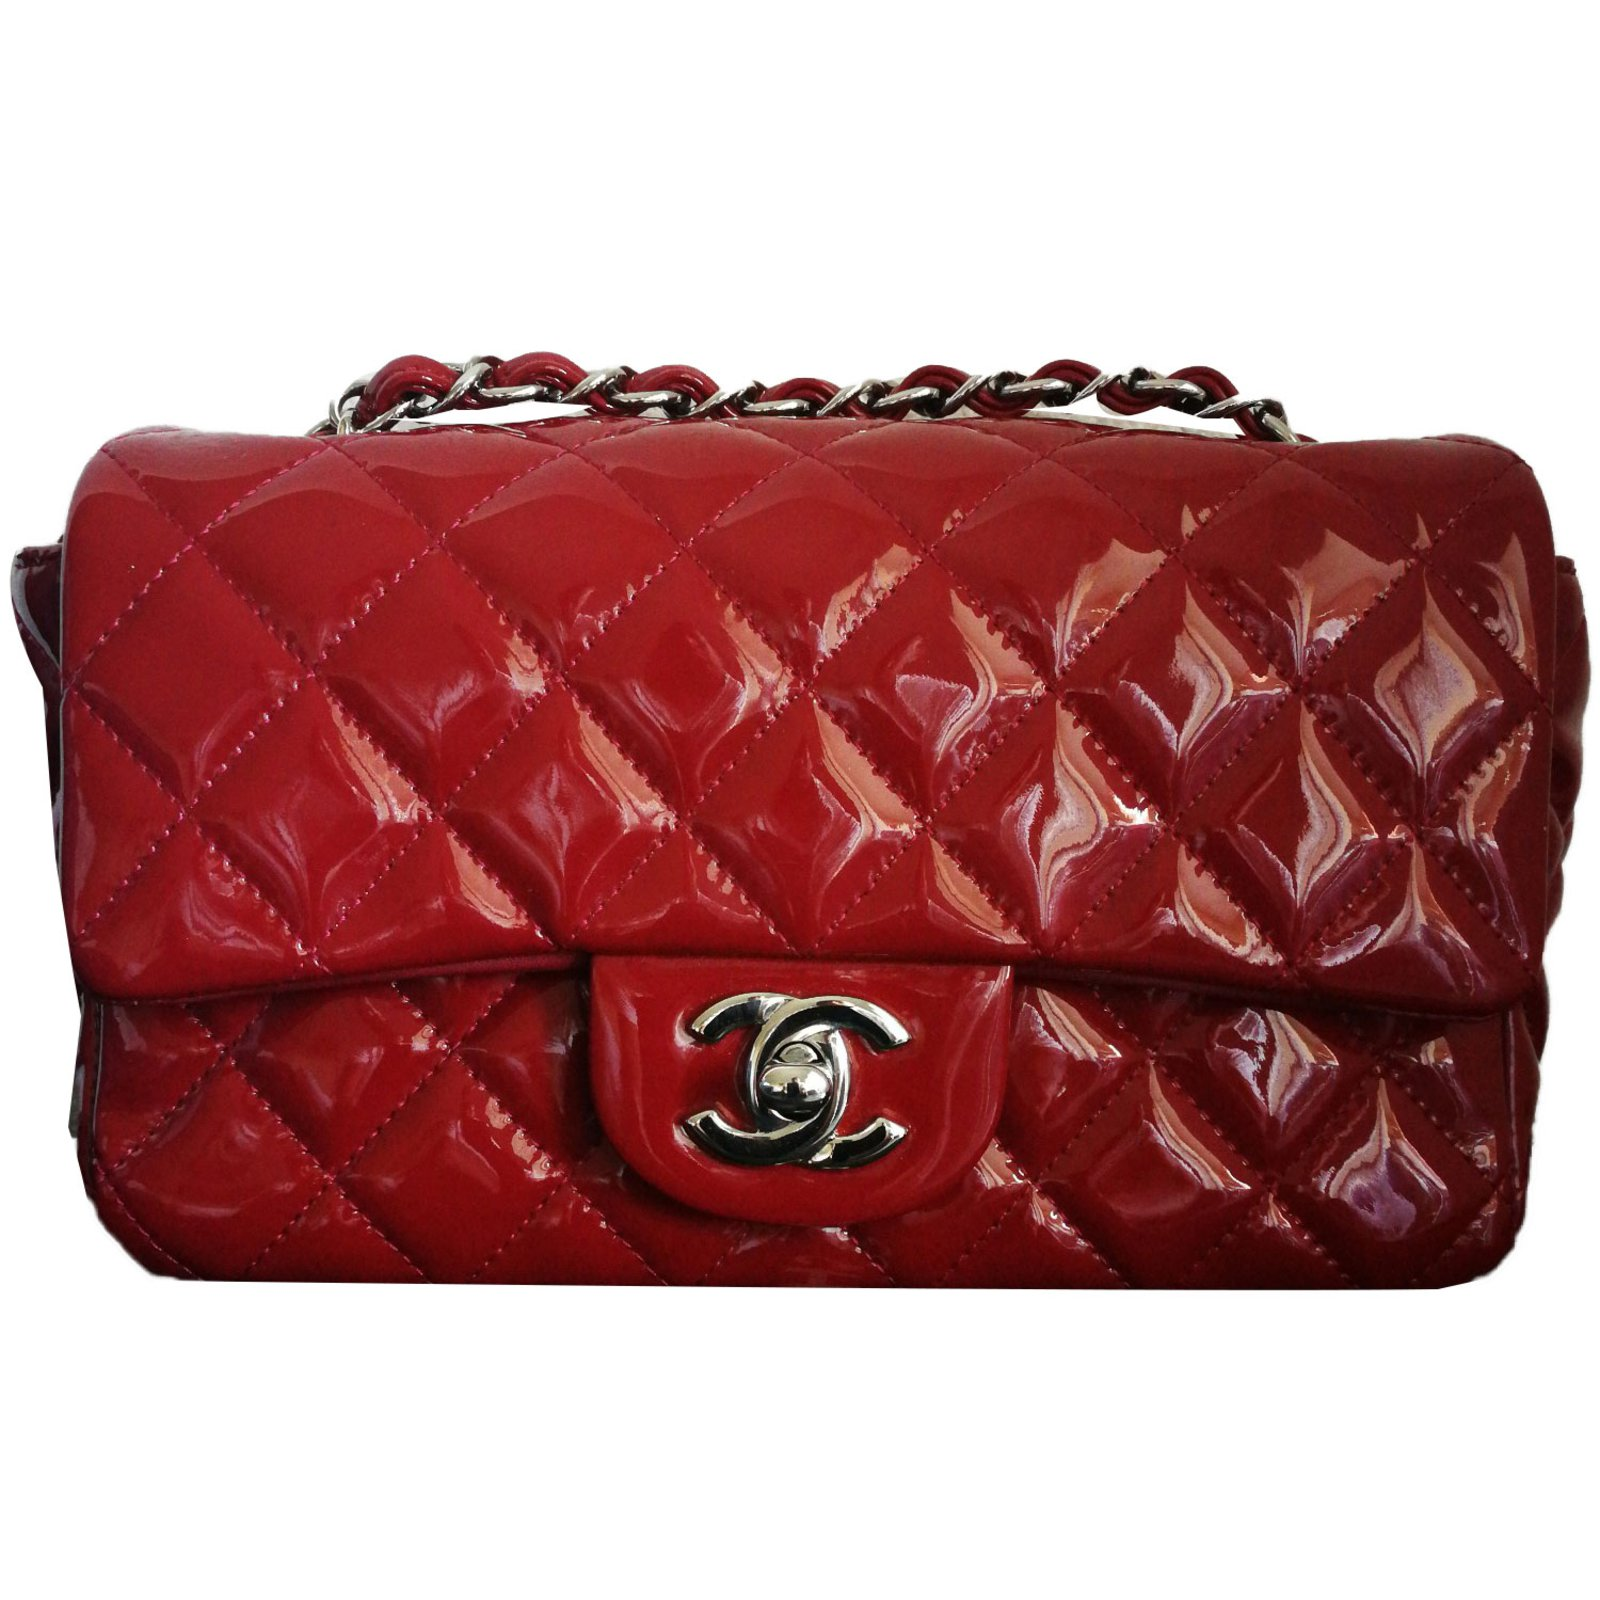 cc4c1a53c08a Chanel Bag Handbags Leather Red ref.75552 - Joli Closet